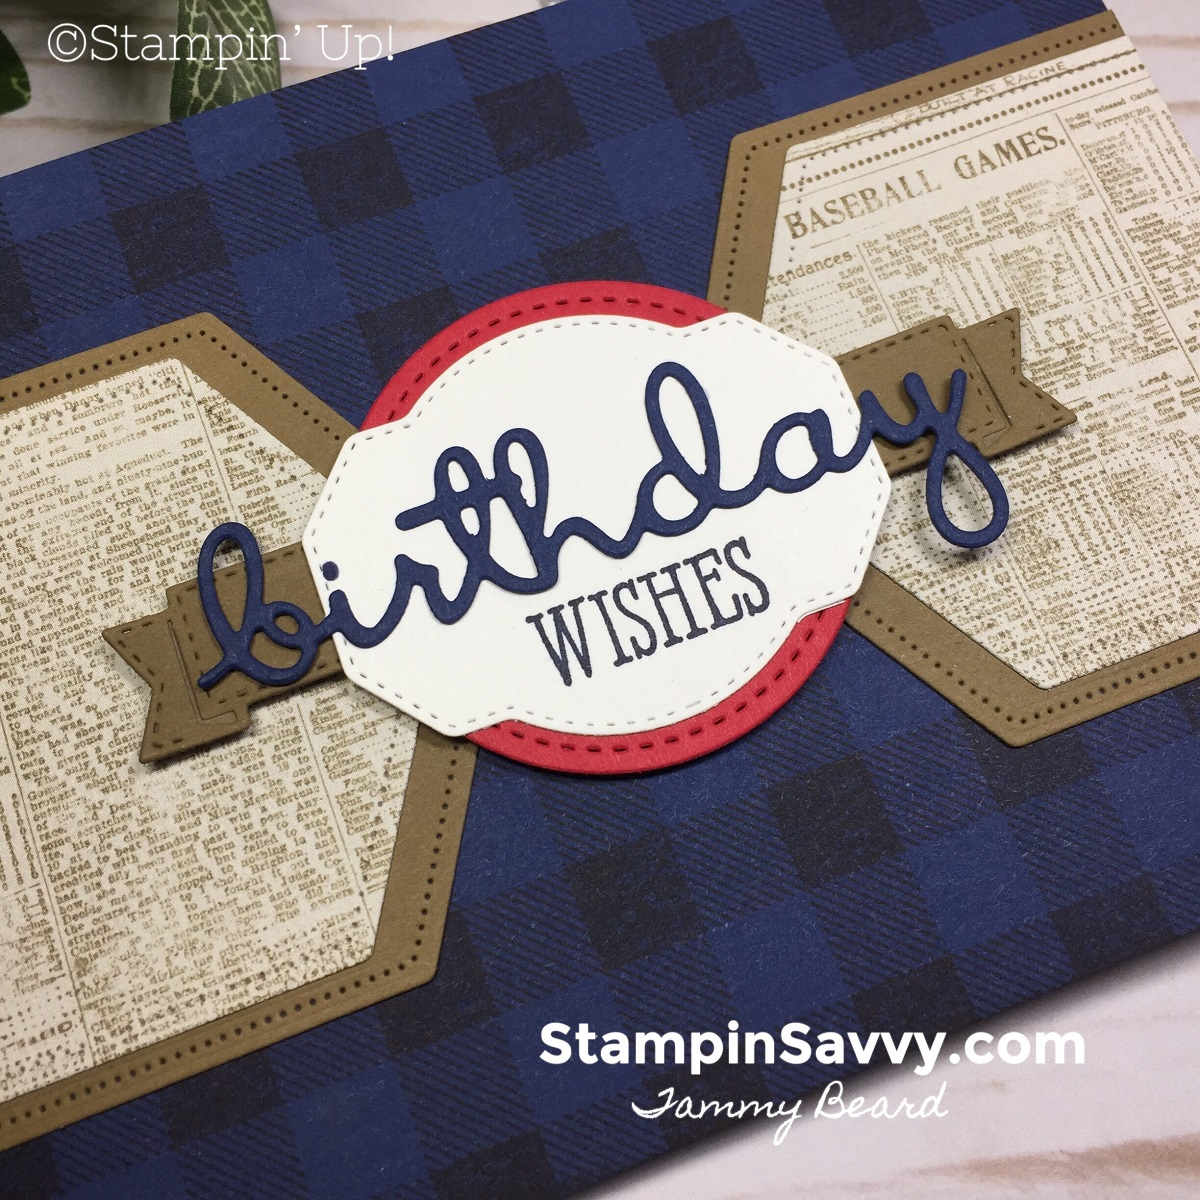 MASCULINE-BIRTHDAY-CARD-FOR-BASEBALL-LOVERS-SAILING-HOME-WELL-WRITTEN-SAID-CARD-IDEAS-STAMPIN-SAVVY-TAMMY-BEARD-STAMPIN-UP-STAMPINUP2